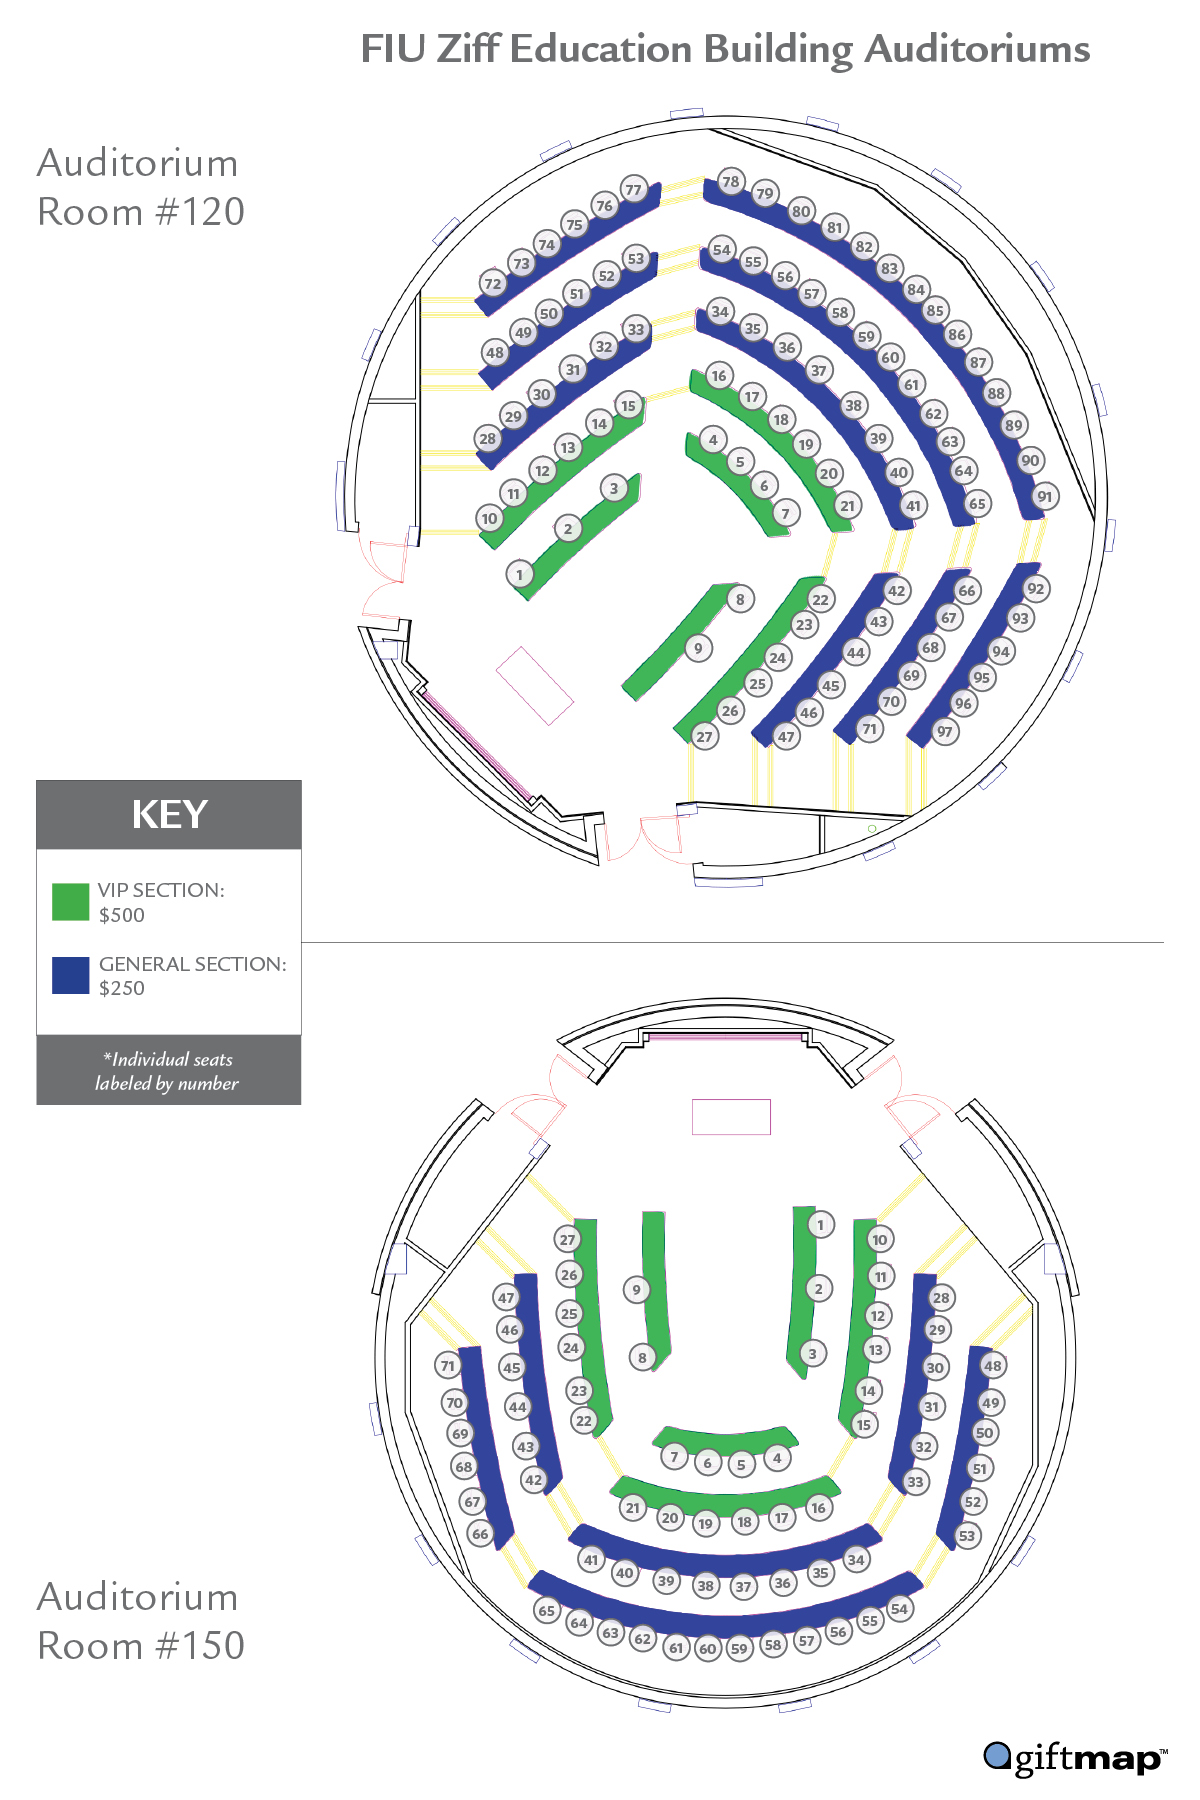 Map of seating choices for Take a Seat campaign